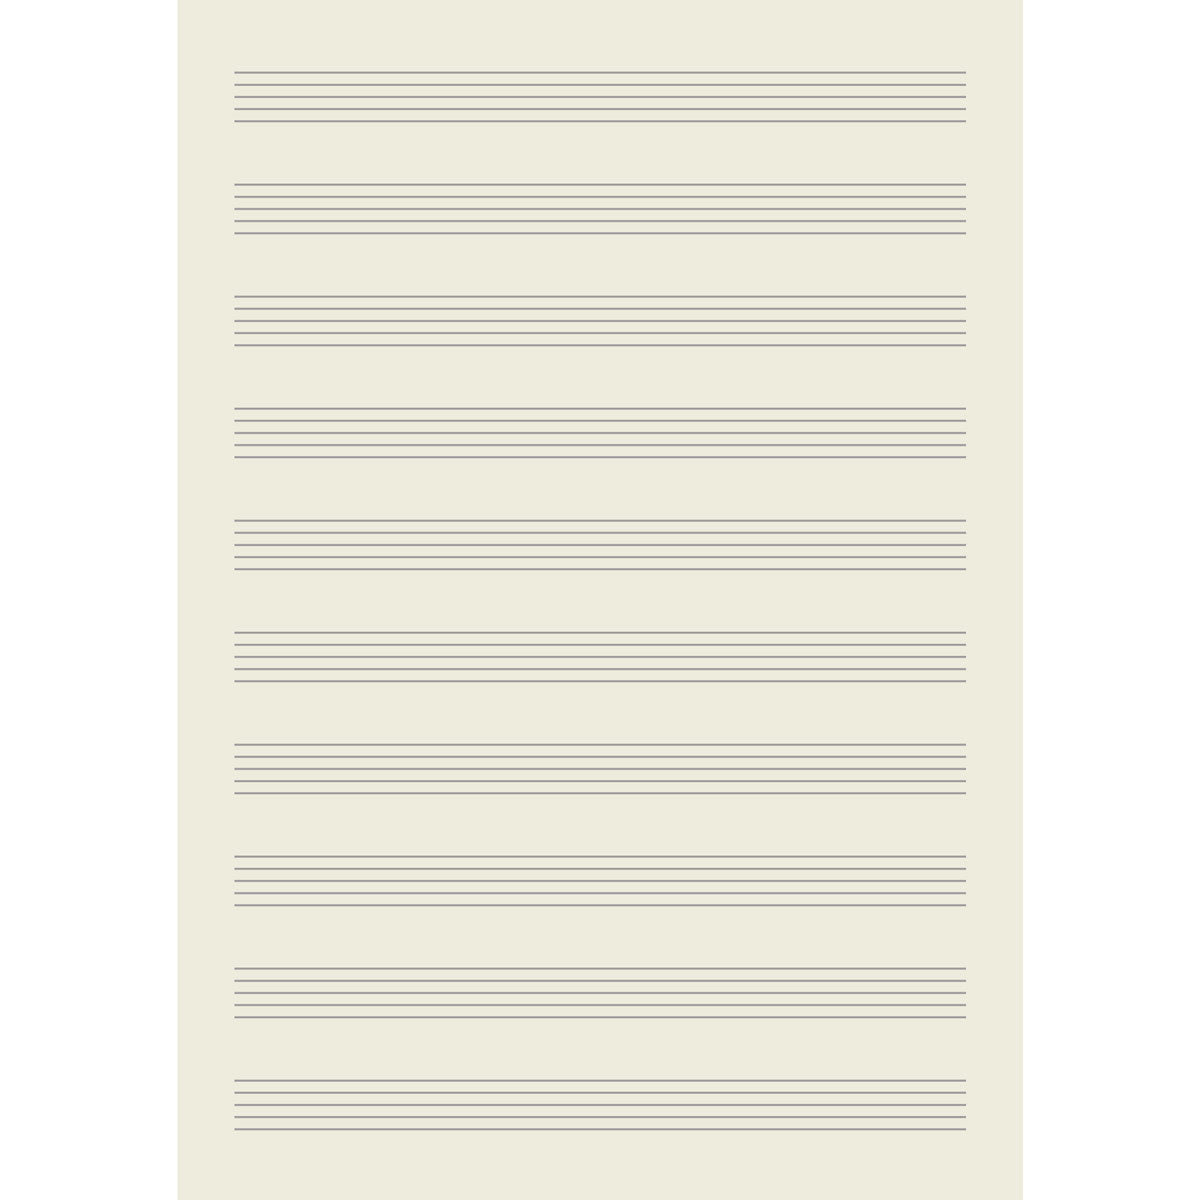 Page Layout of Woven Cloth Music Manuscript Notebook